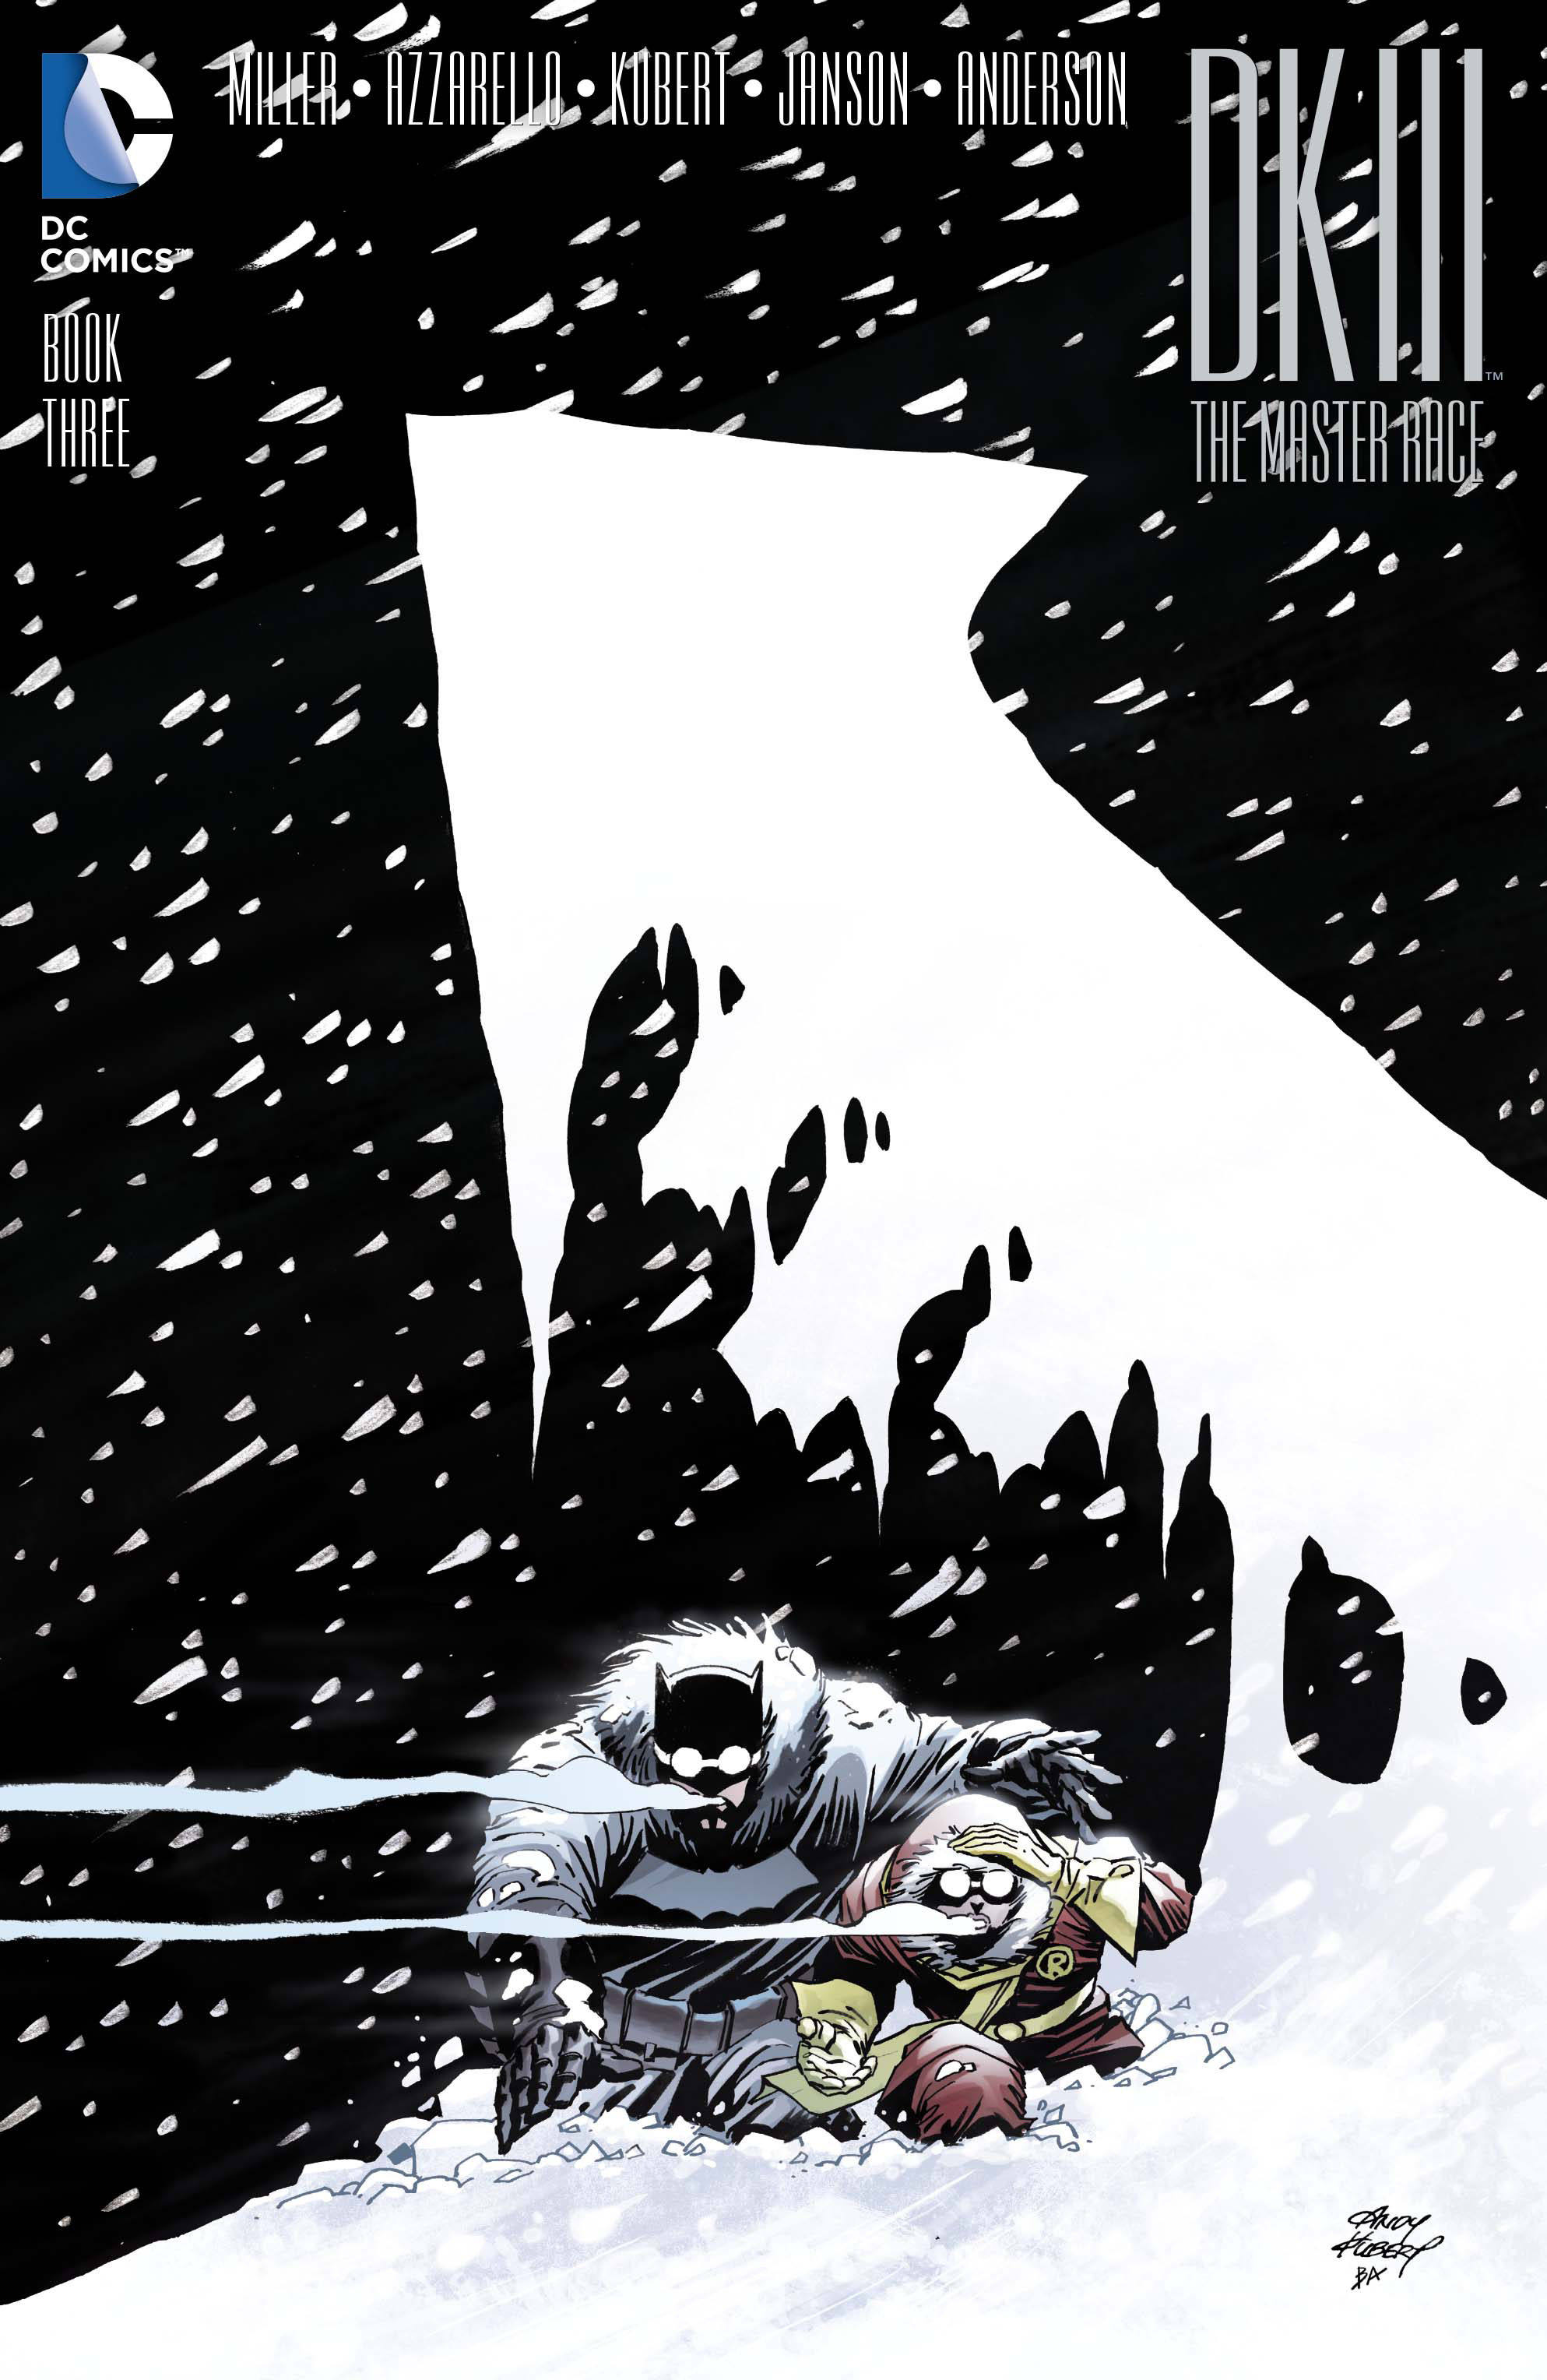 DARK KNIGHT III MASTER RACE #3 (OF 8)